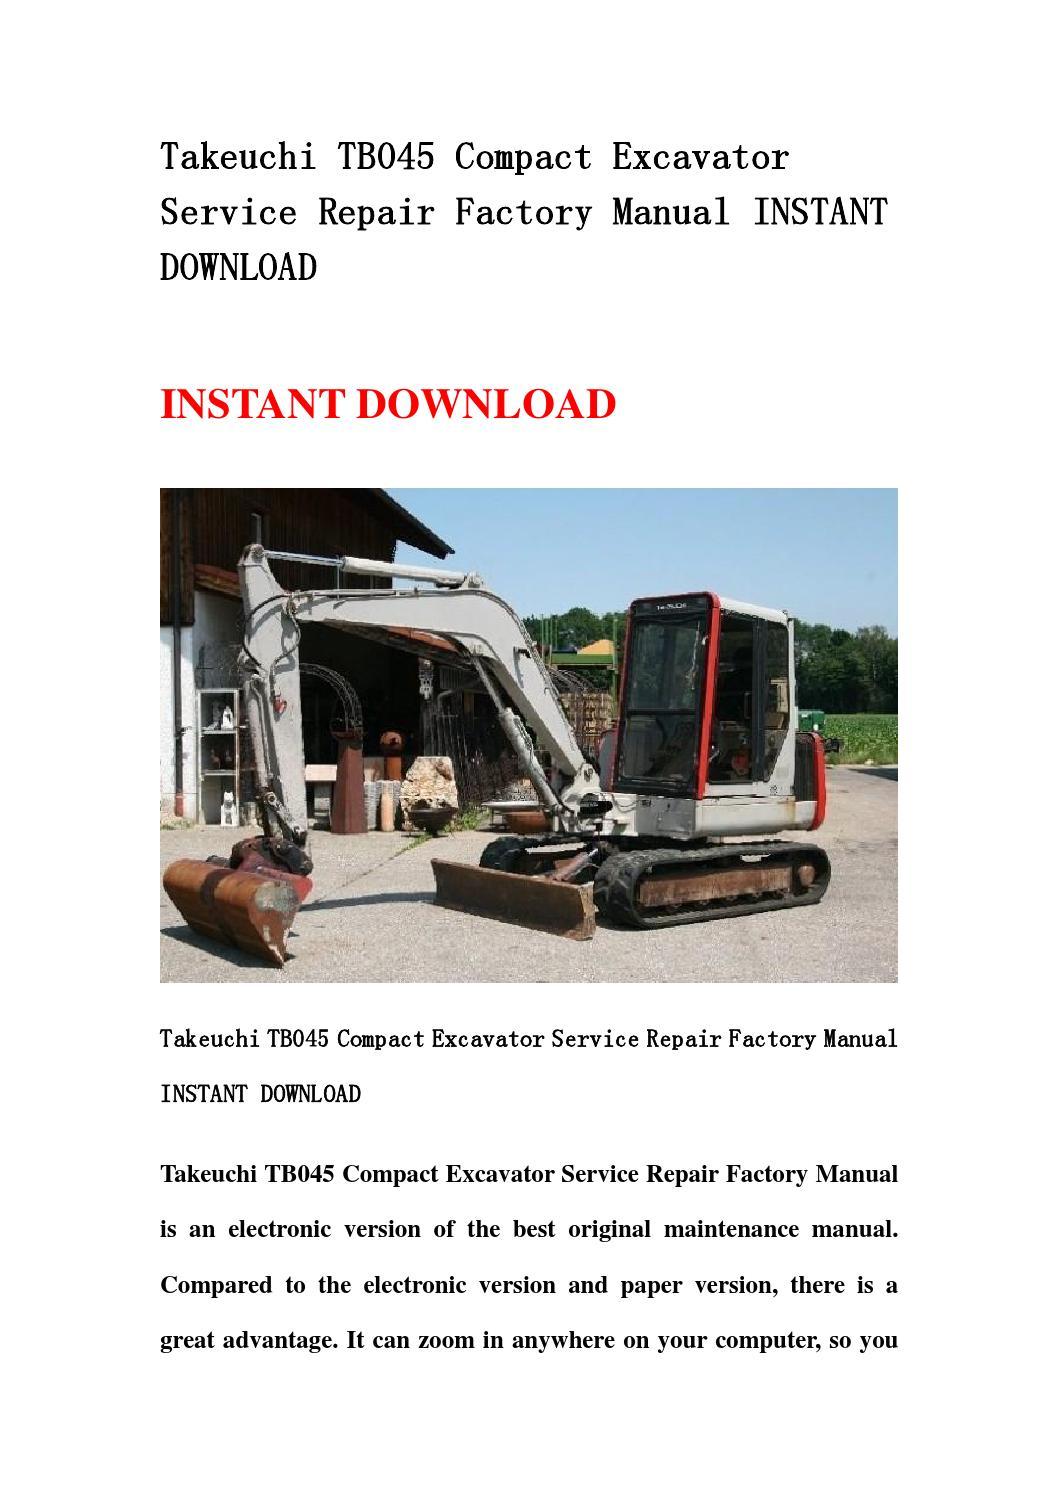 Takeuchi tb045 compact excavator service repair factory manual instant  download by d-repairmanual - issuu